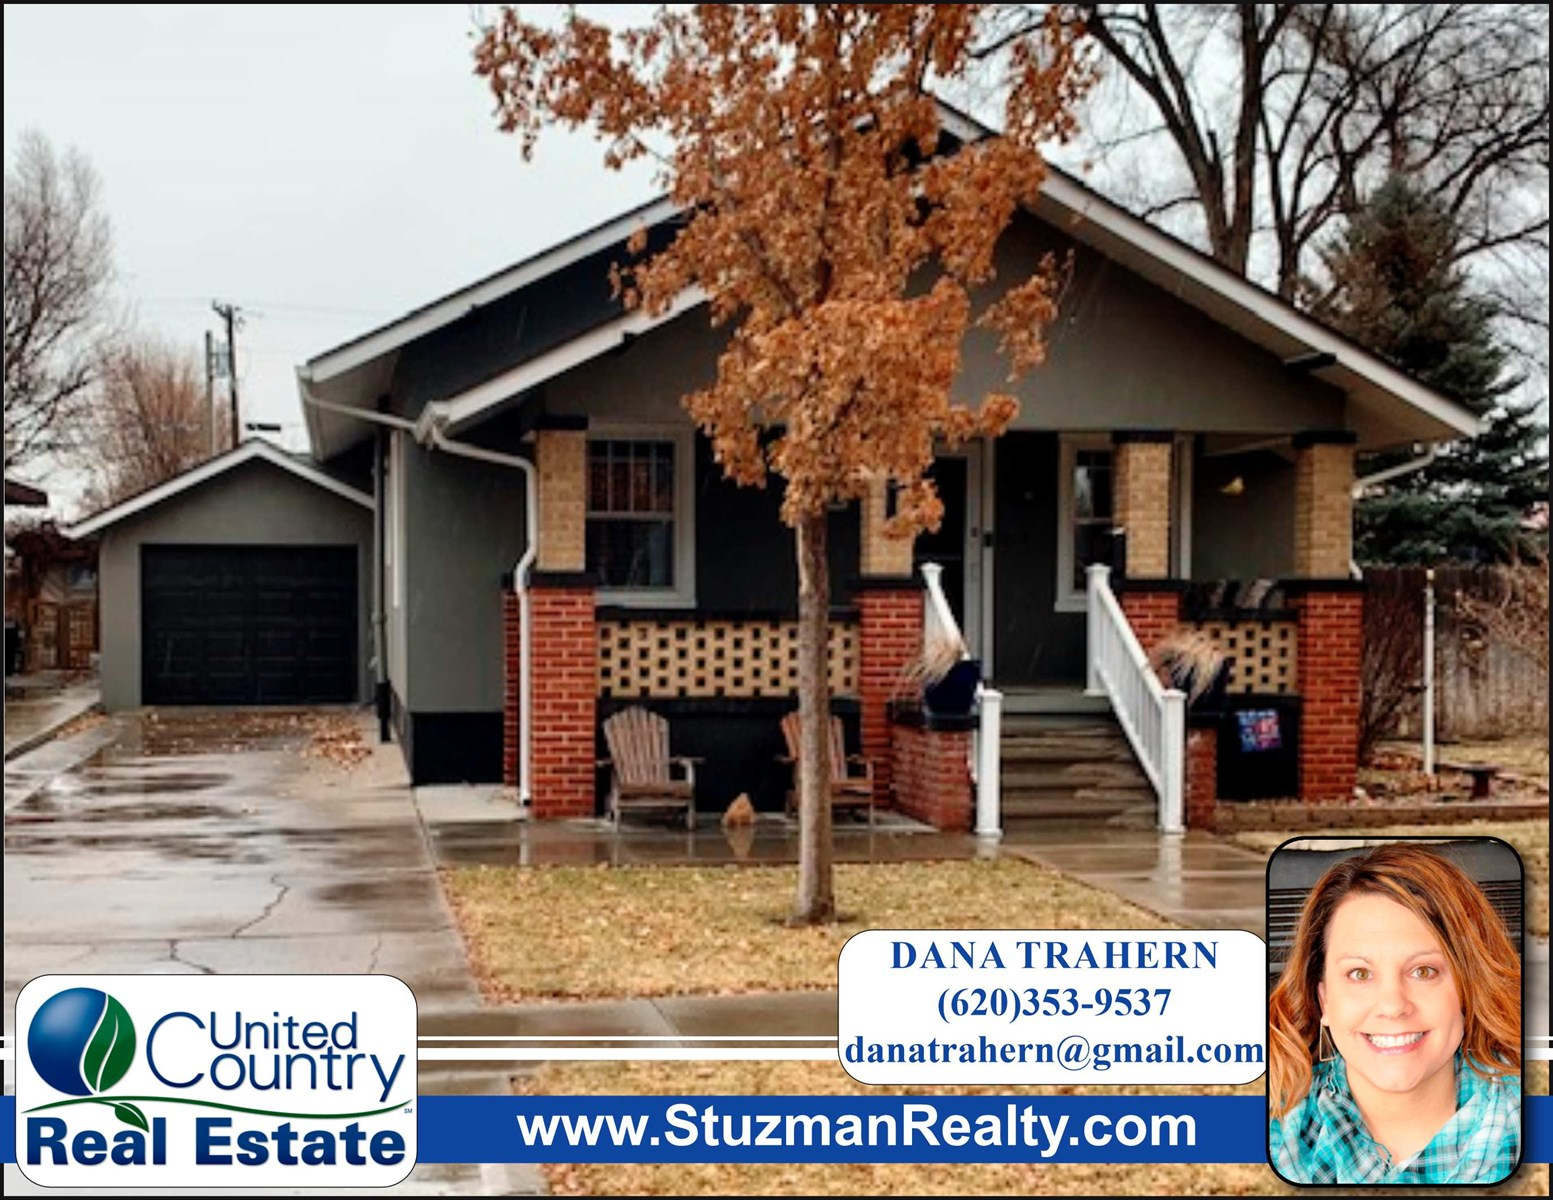 CHARMING FOUR BEDROOM HOME FOR SALE IN ULYSSES, KANSAS